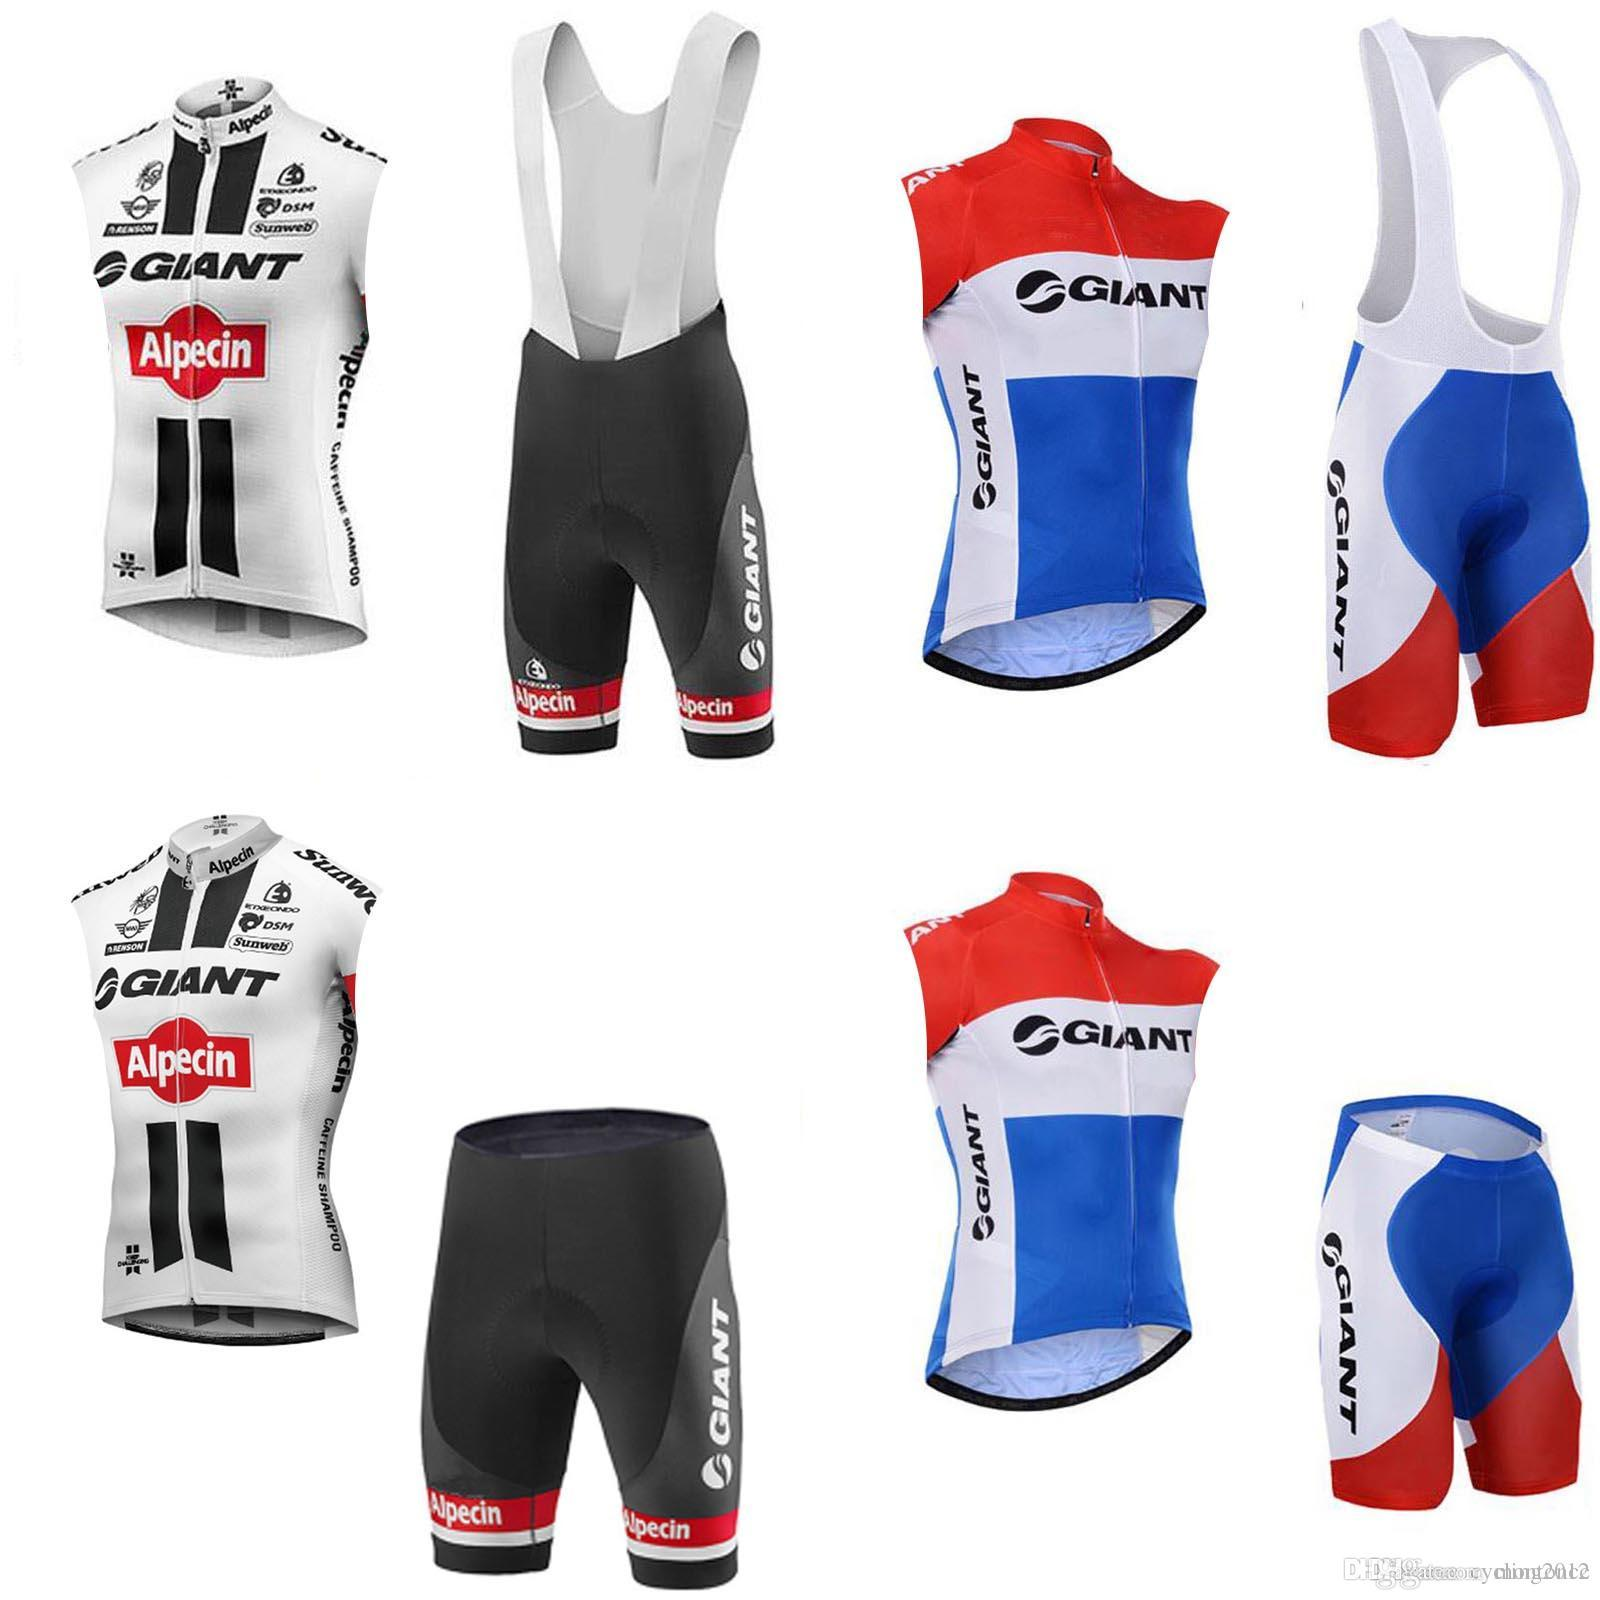 ed9600fa Hot sale new GIANT Sleeveless jersey Vest bib shorts sets 3D gel pad  Breathable Quick dry team sport Bicycle clothing free shipping F0814